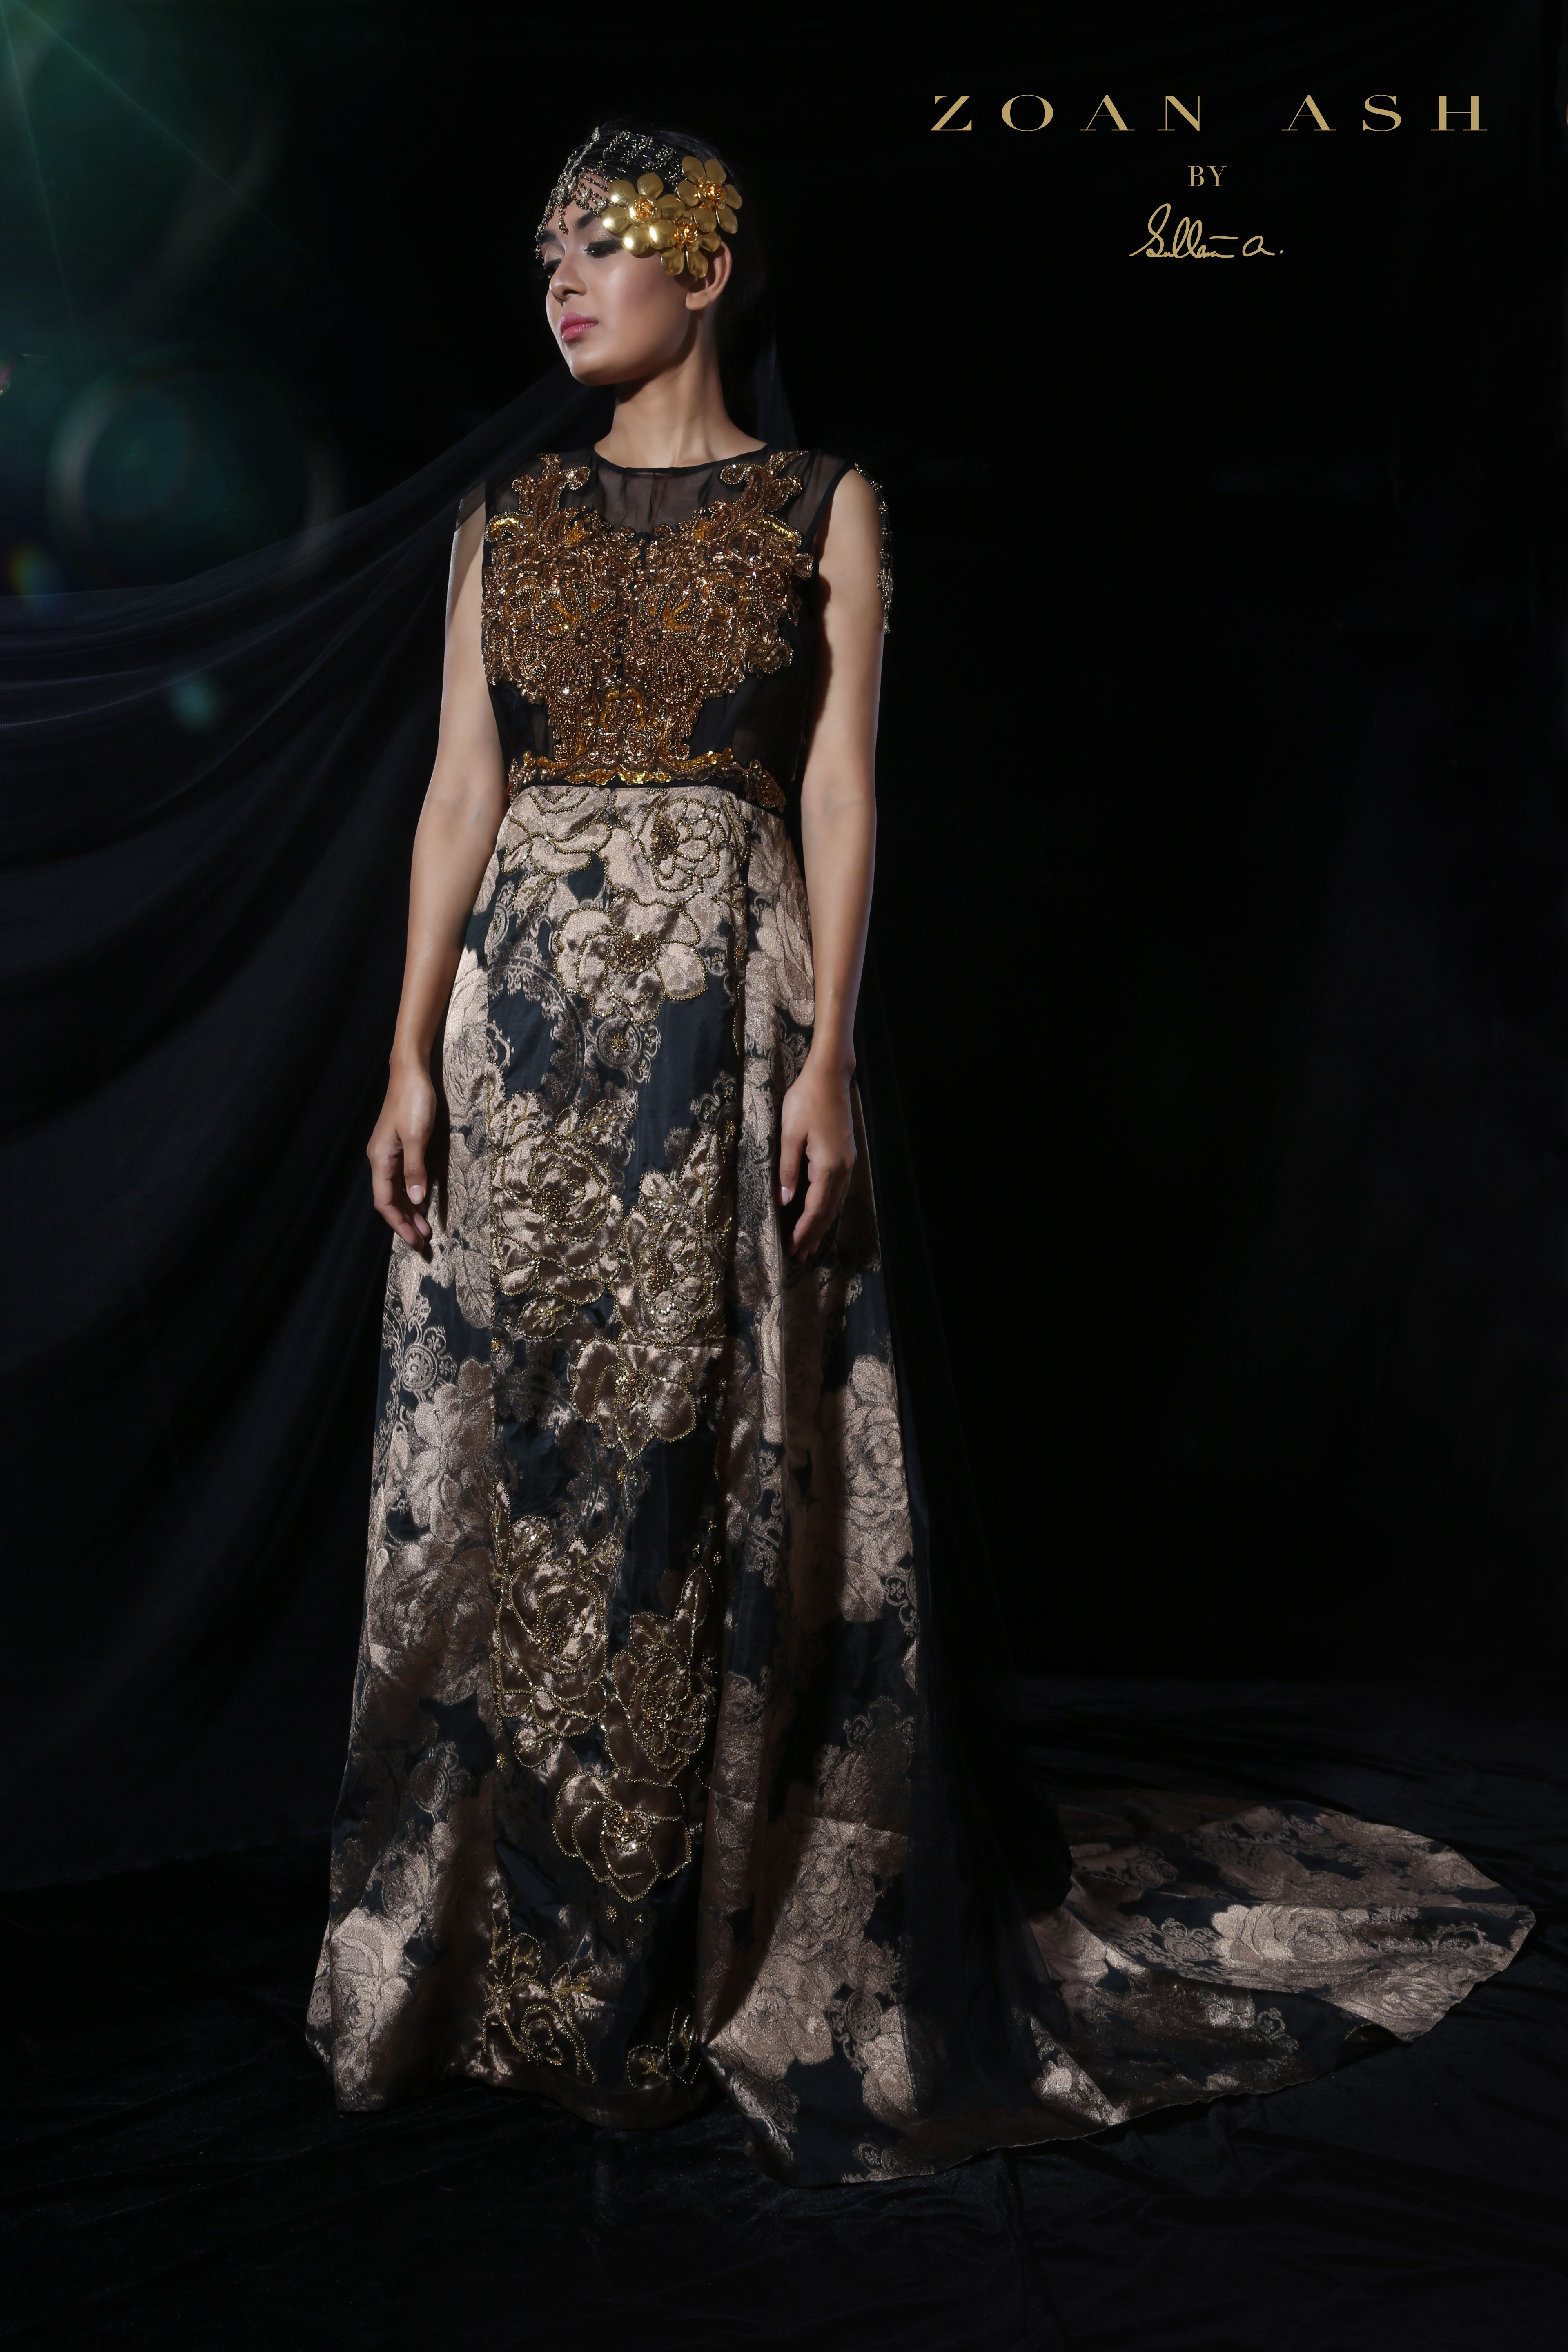 Eye Catching Antique Gold Gown With Handcrafted Embroidery At The Bust.